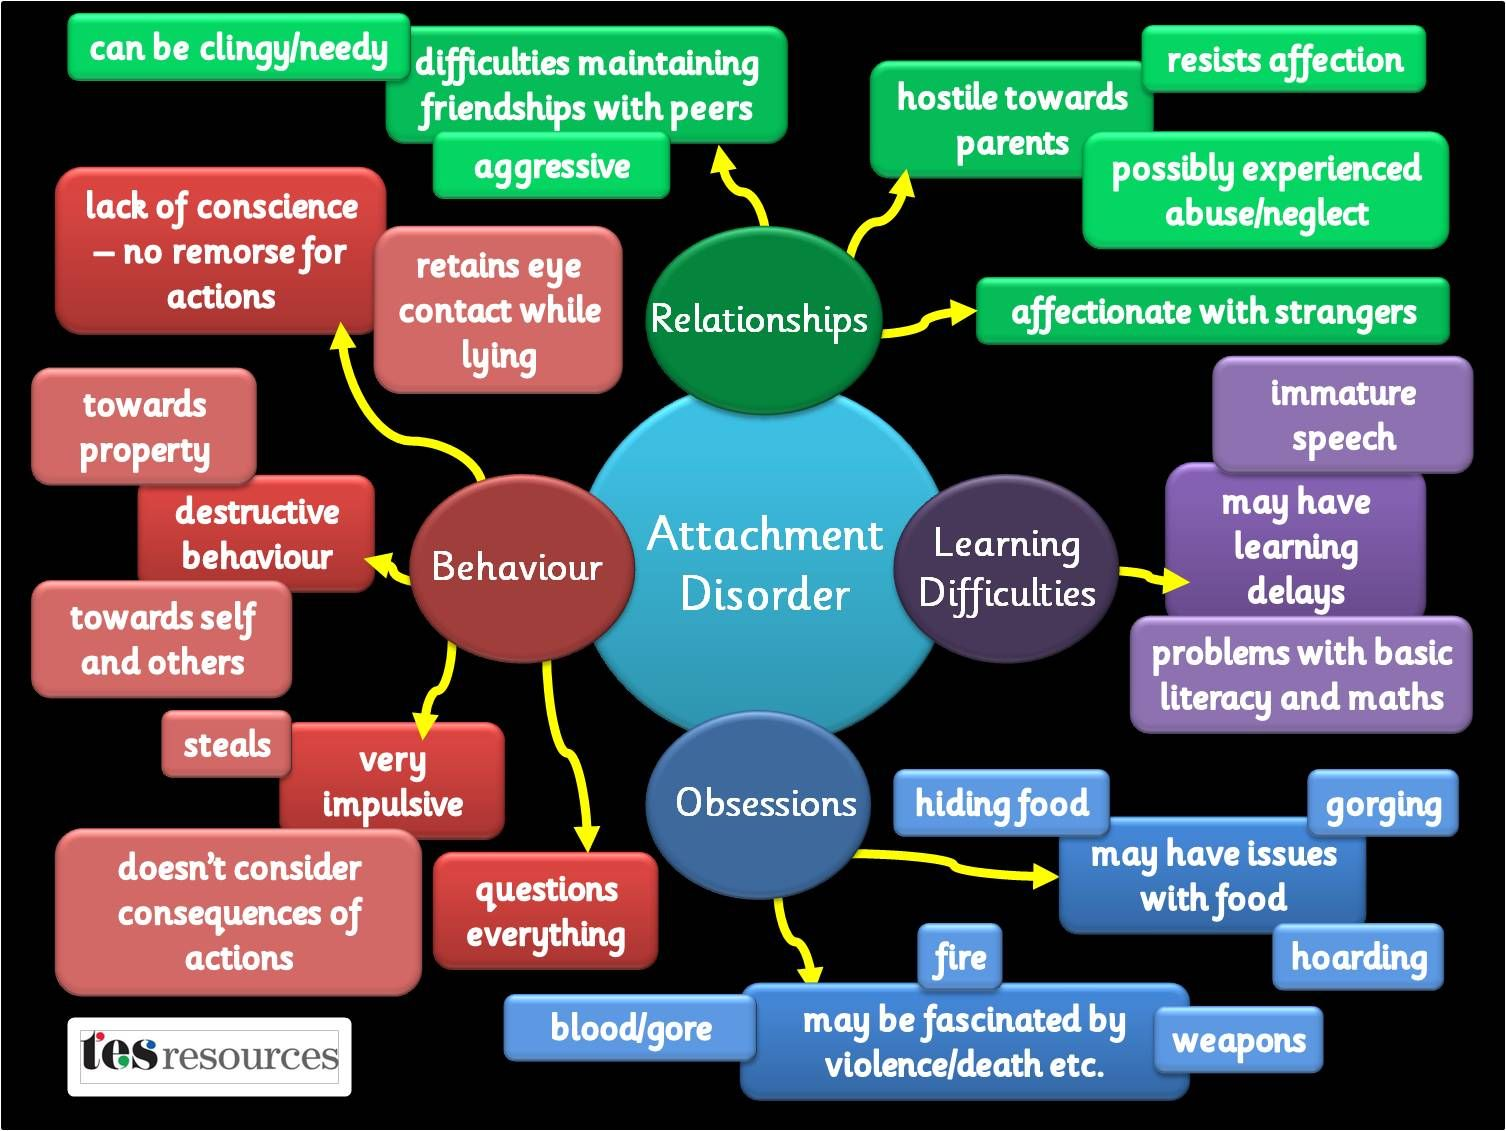 A Poster Showing Some Of The Difficulties Pupils With